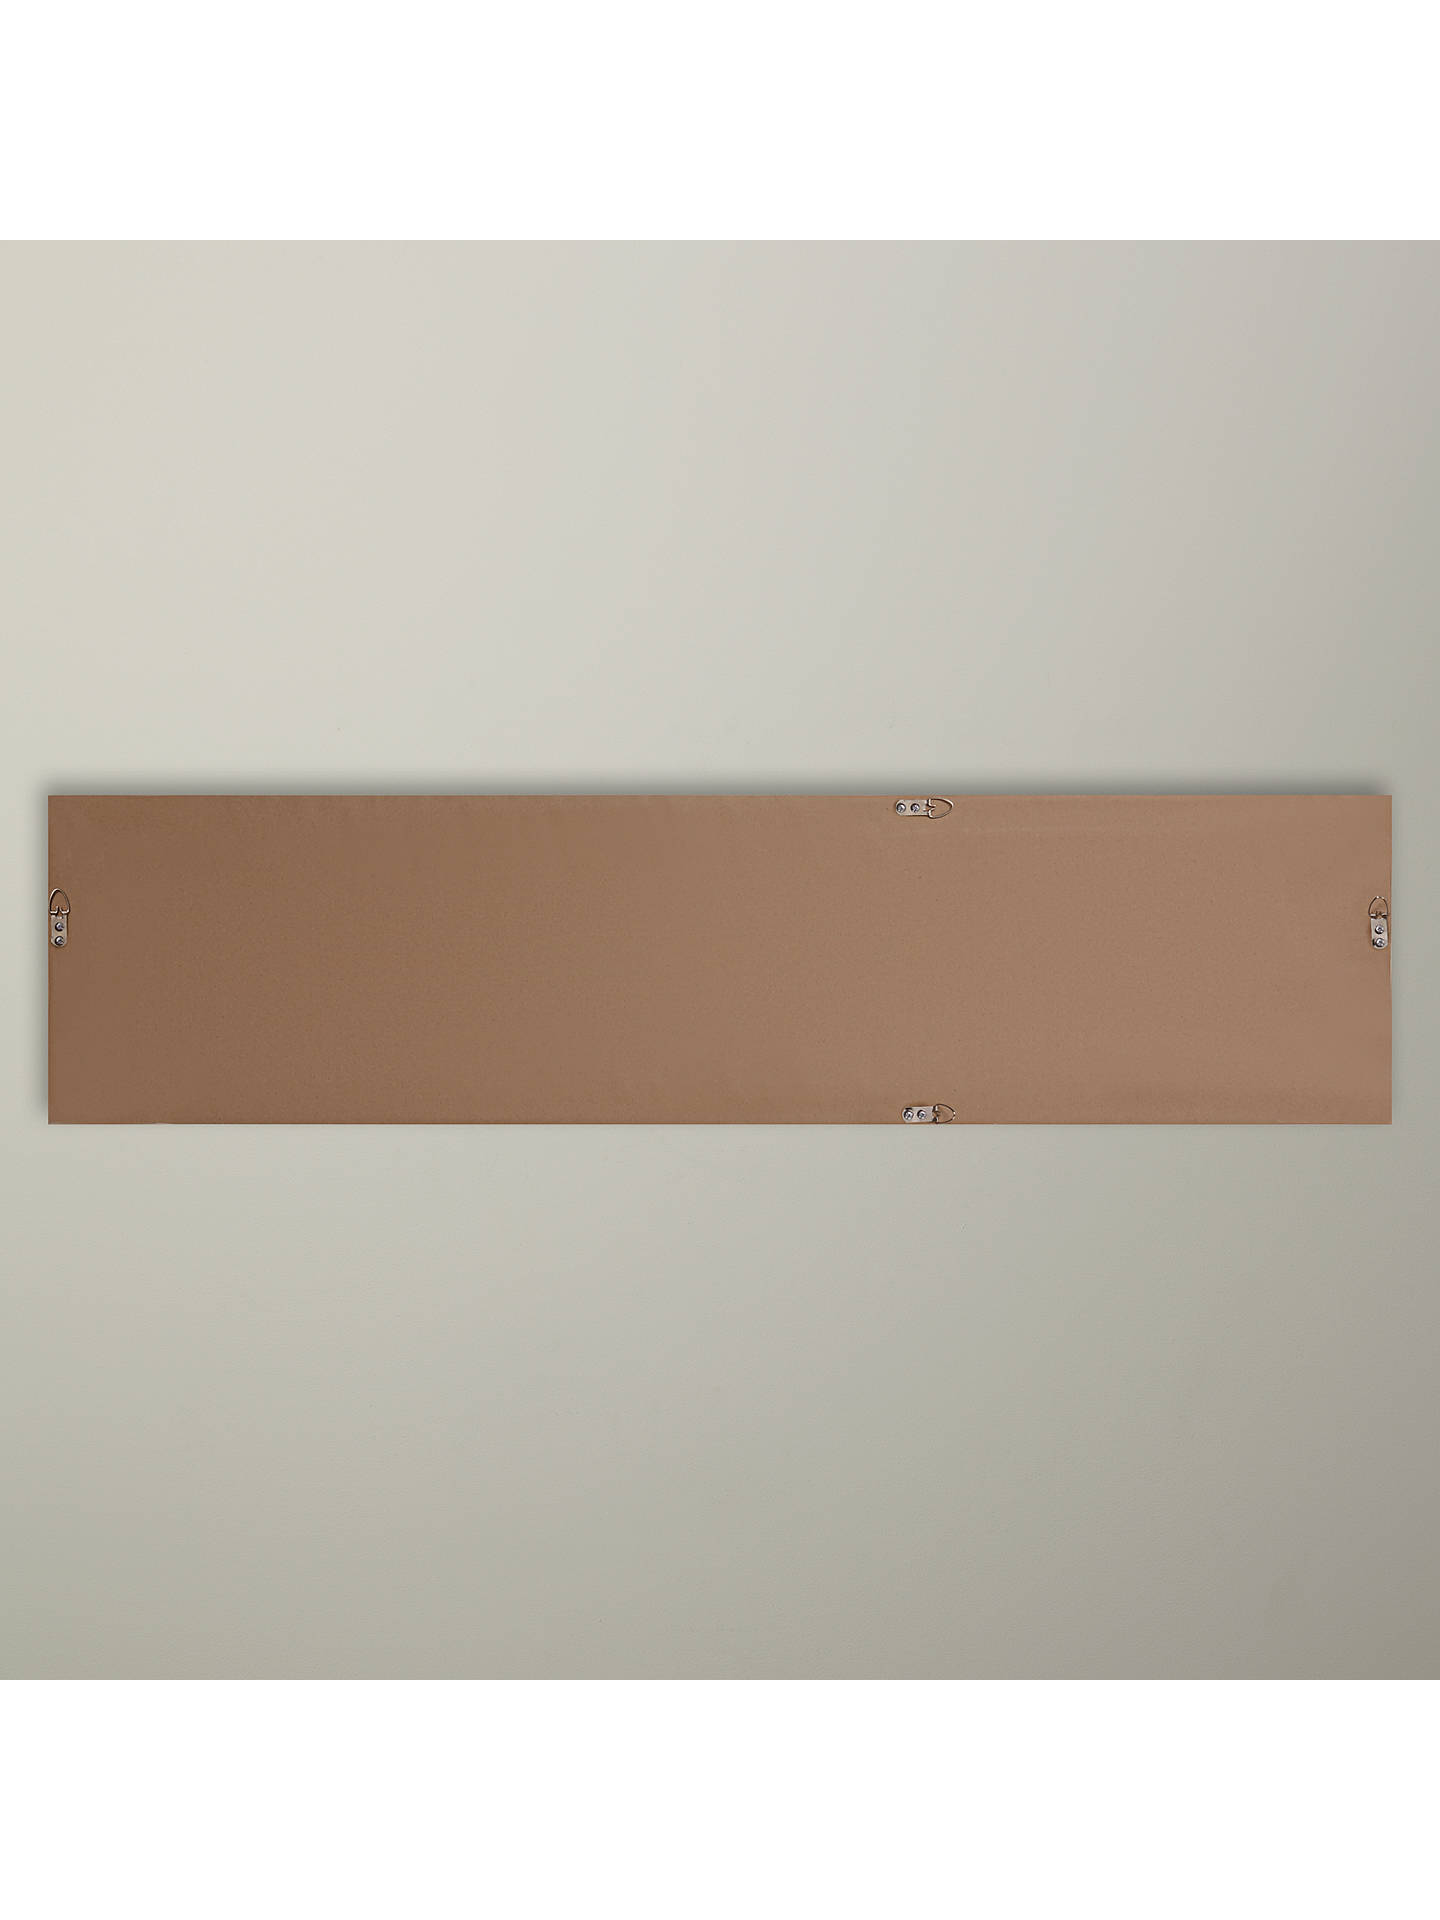 BuyJohn Lewis & Partners Coastal Texture Full Length Mirror, 120 x 40cm, White Online at johnlewis.com